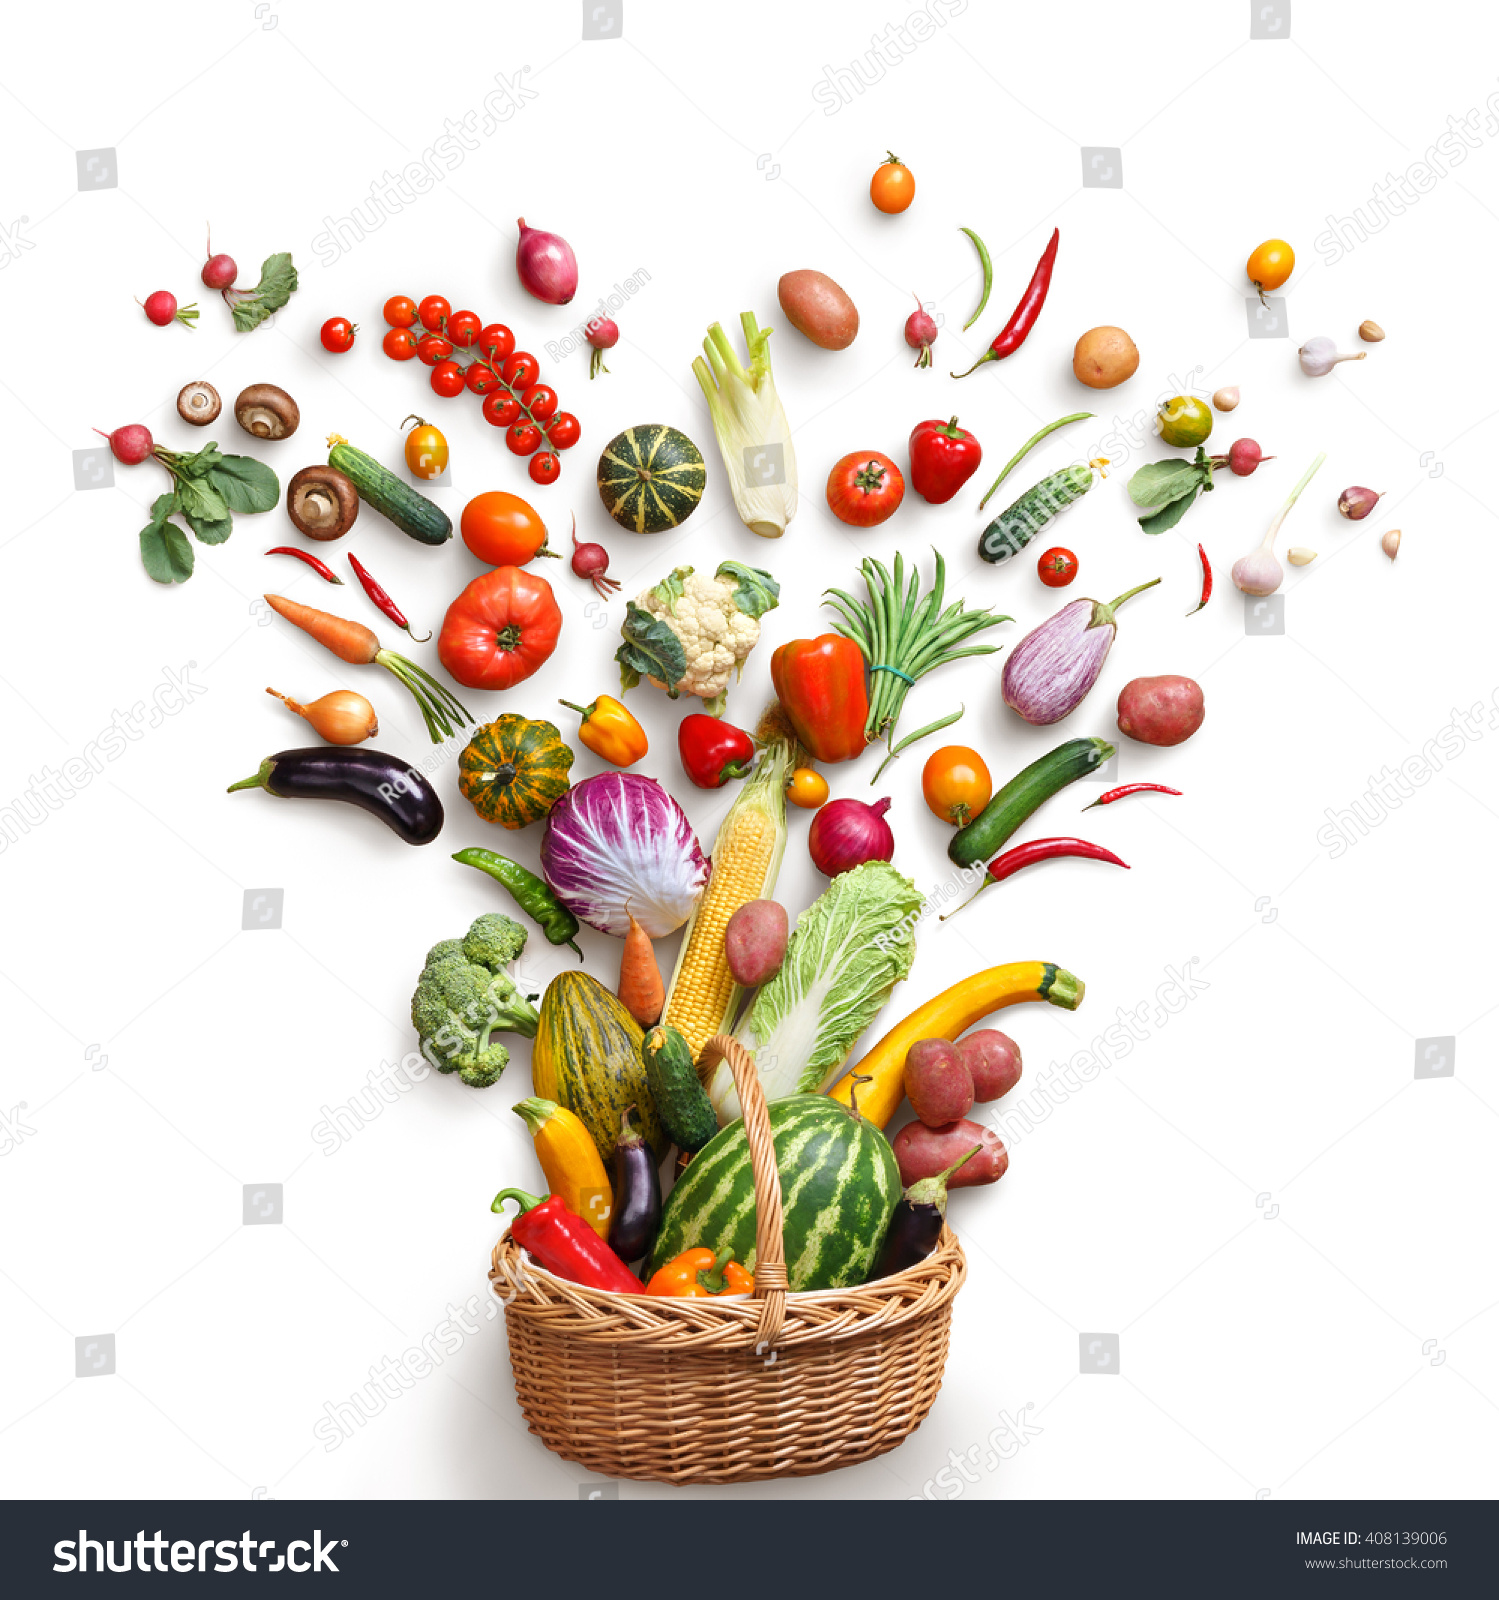 Healthy Food Basket Studio Photography Different Stock Photo Edit Now 408139006